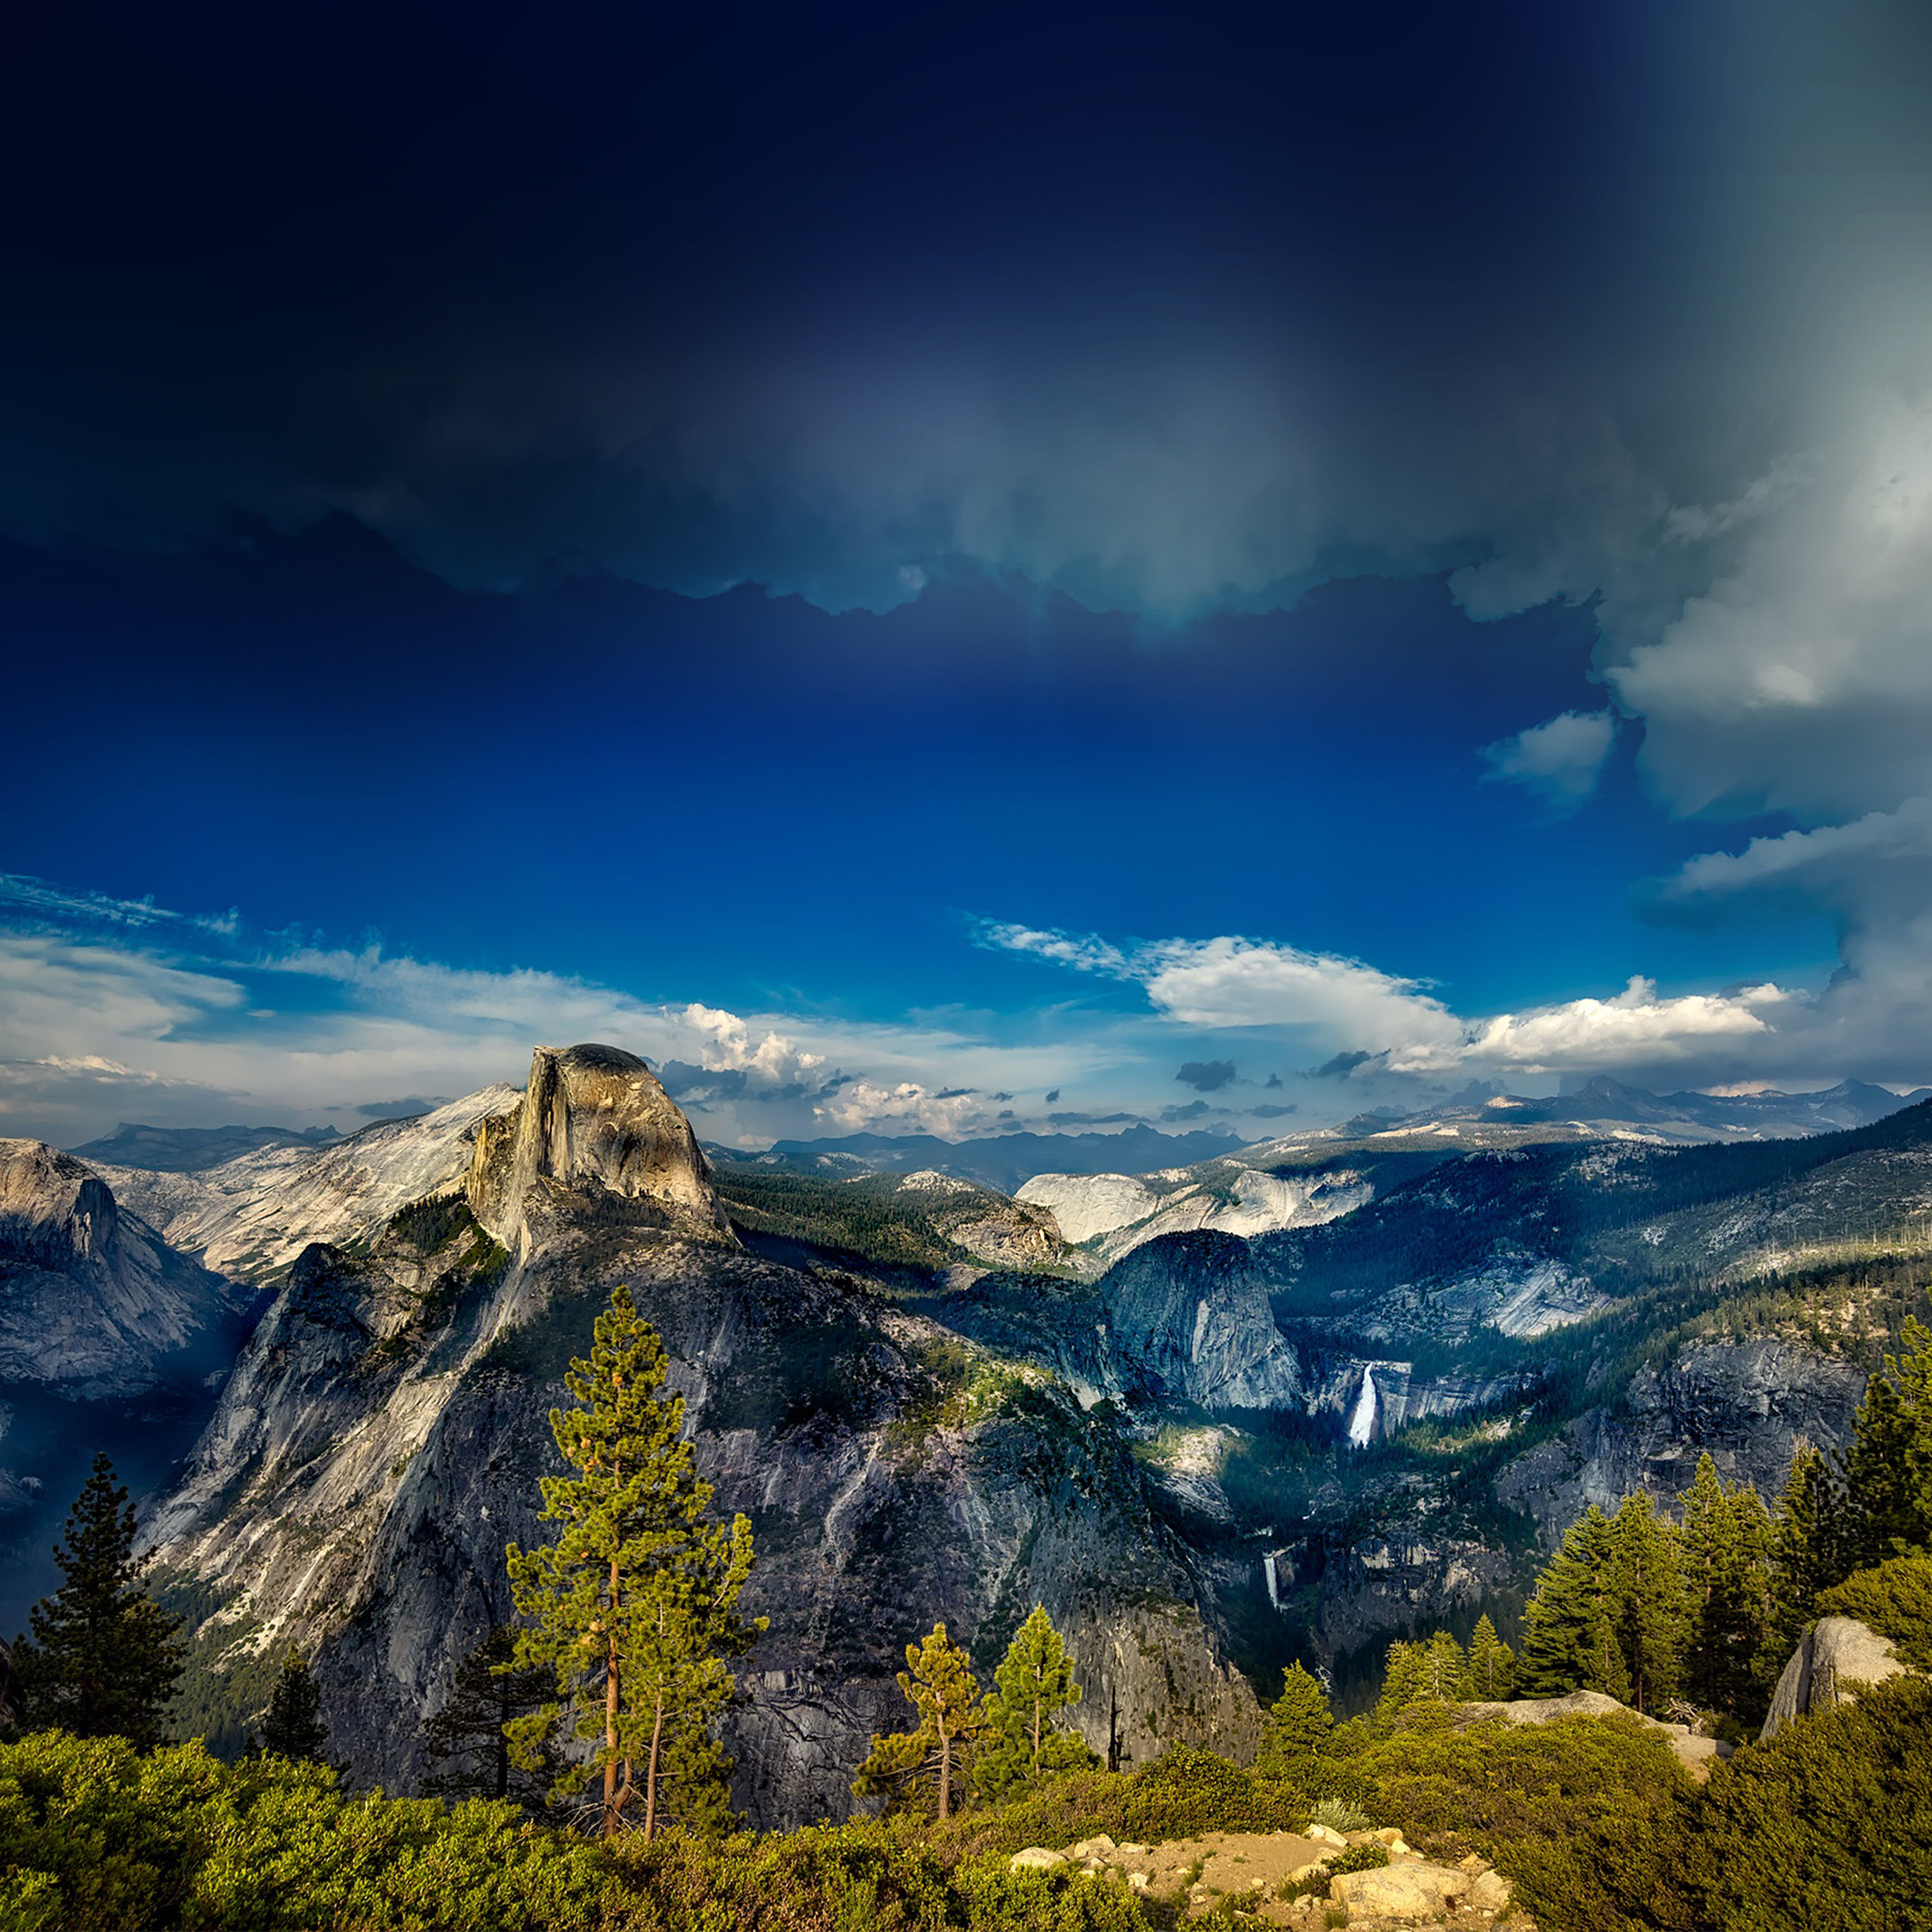 Nq61-yosemite-mountain-wood-summer-nature-wallpaper